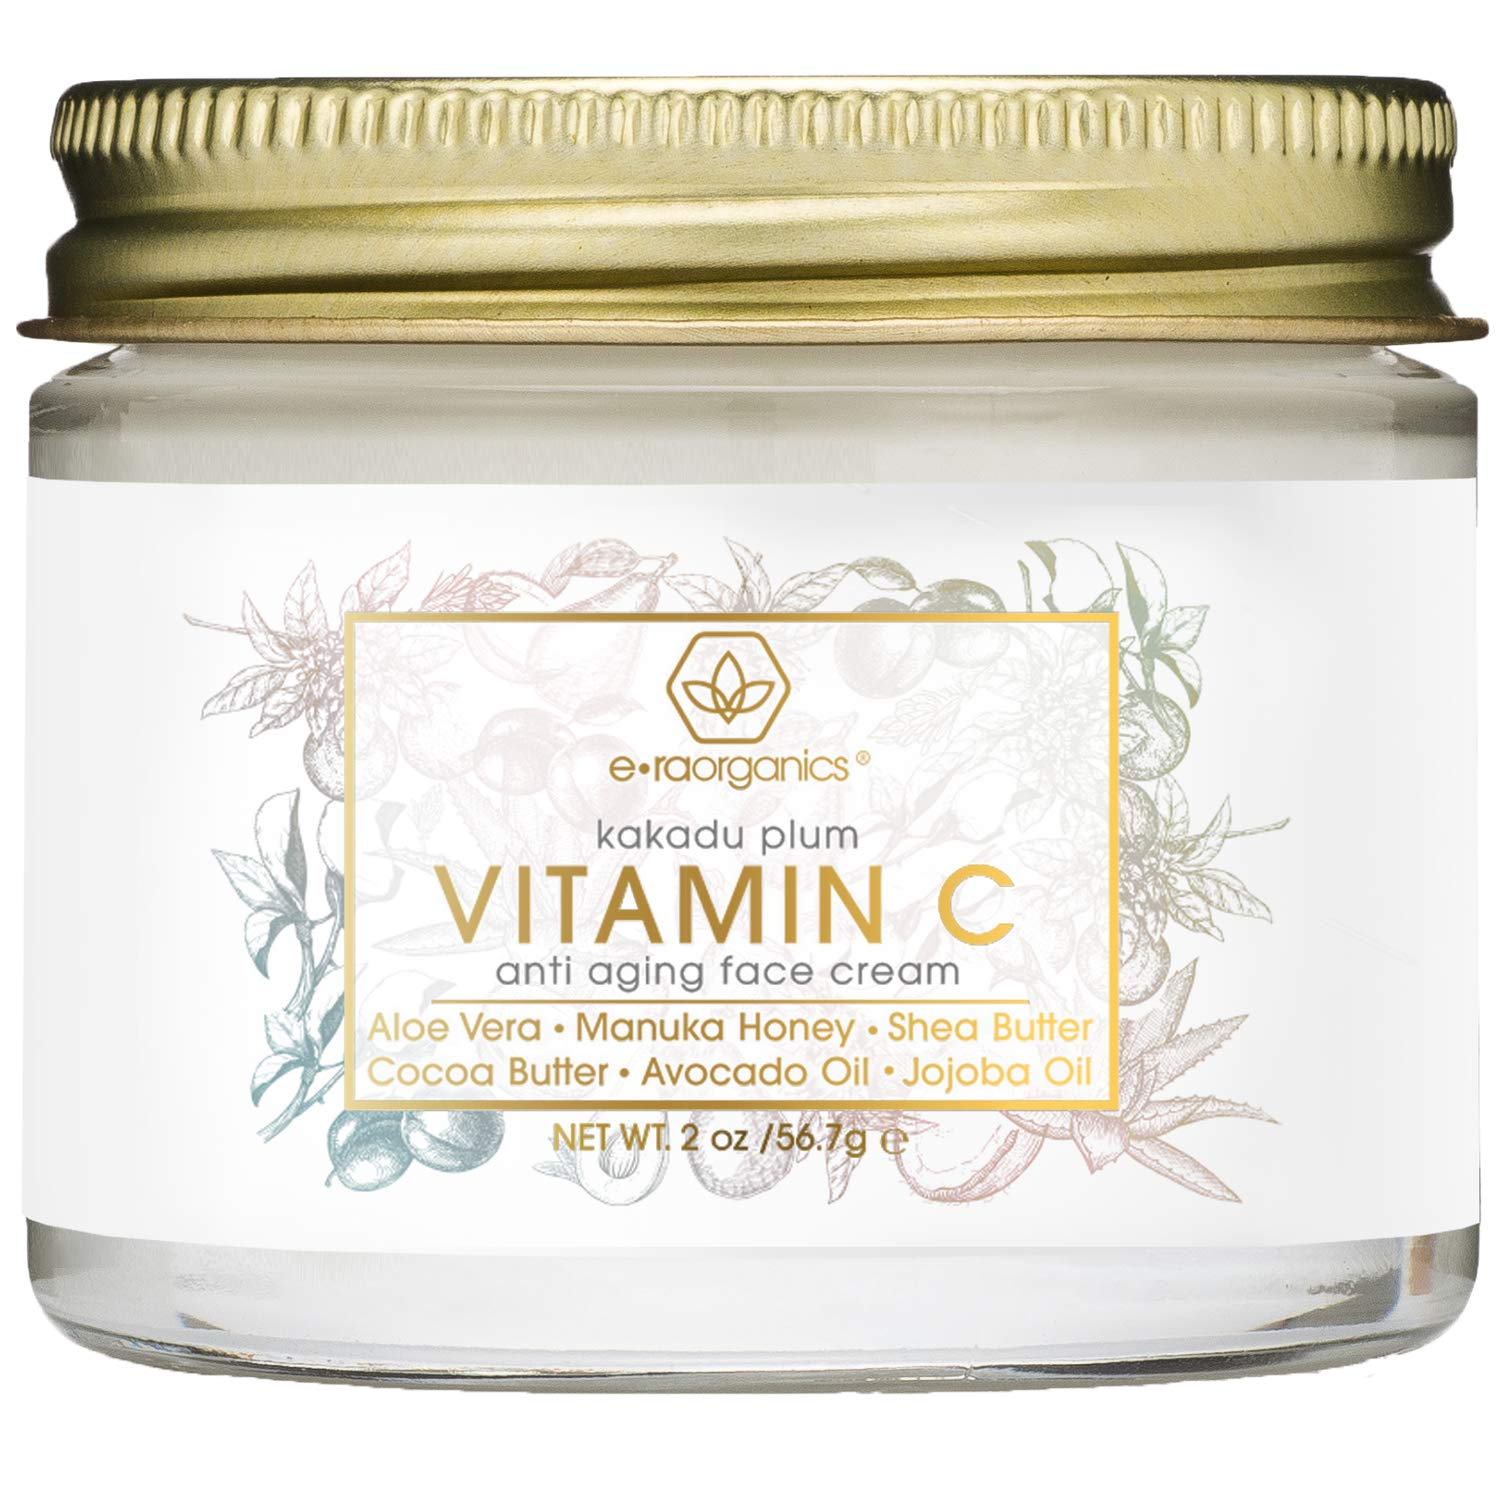 Vitamin-C Face Moisturizer & Eye Cream - Revitalizing Natural Anti Aging Moisturizer With Kakadu Plum, Jojoba Oil, Avocado Oil, Vitamin E for Dry Skin Care, Wrinkles, Aging & Eye Bags 2oz Era-Organics by Era Organics